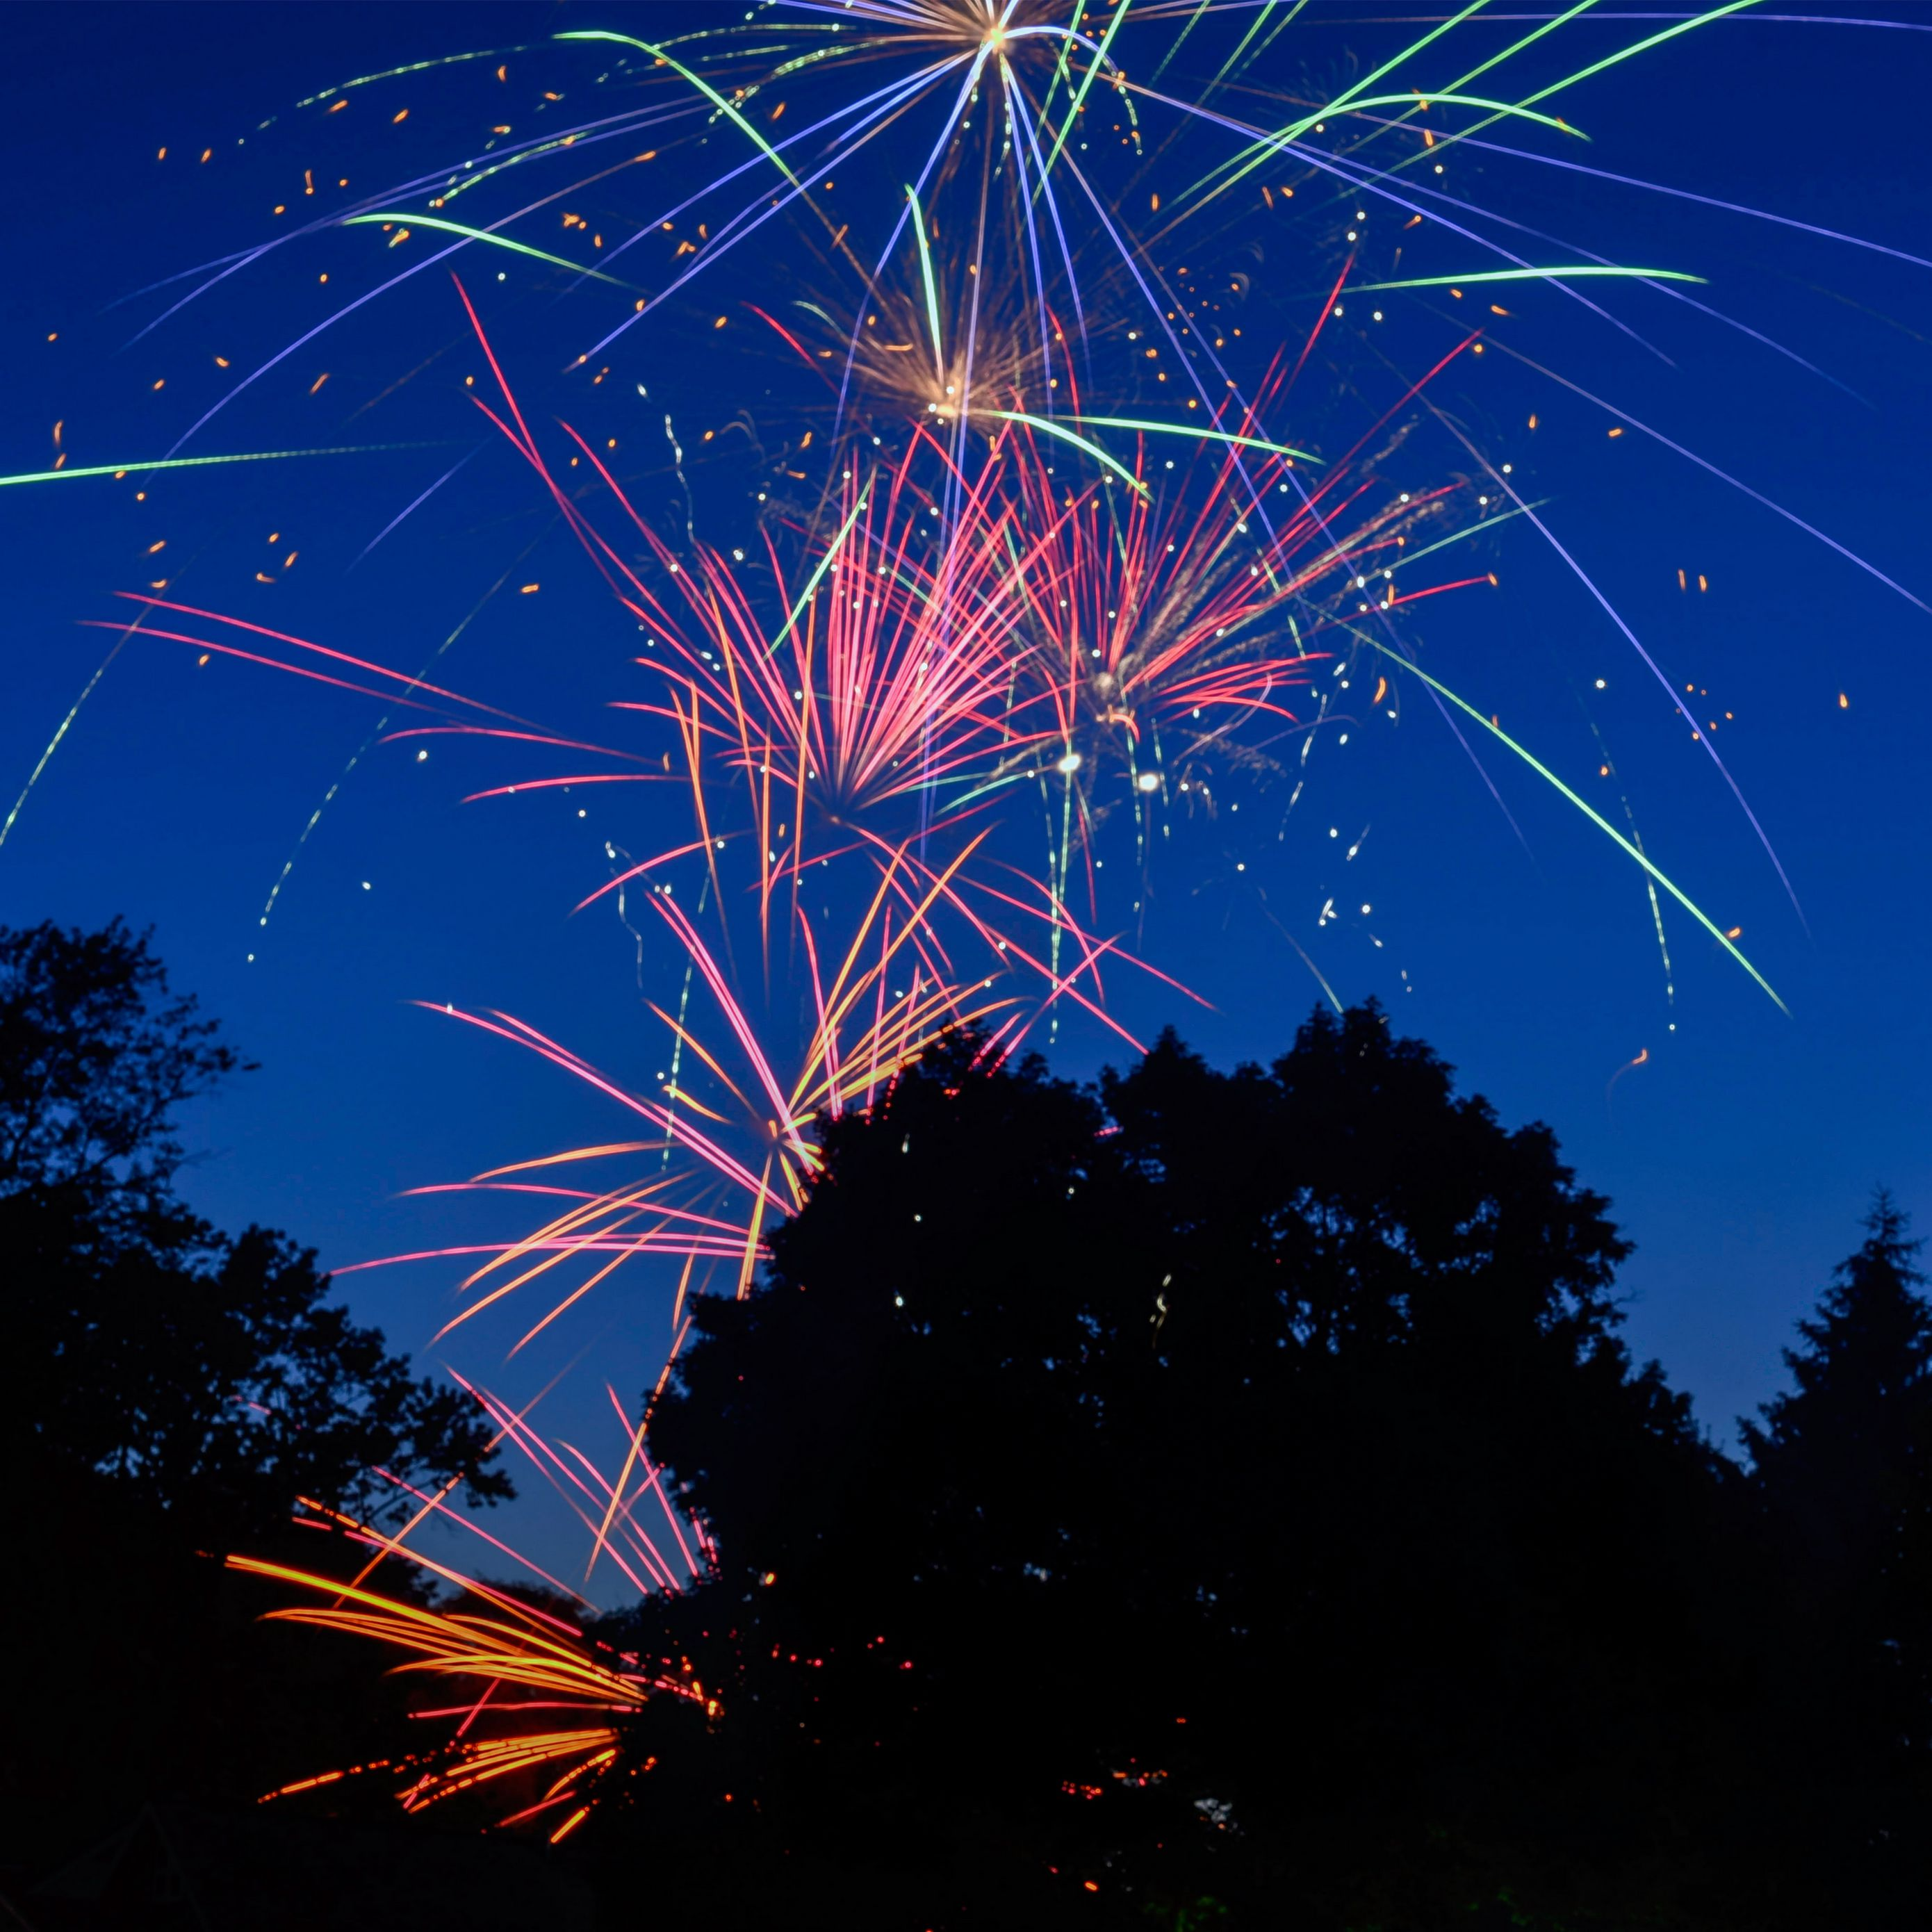 2780x2780 Wallpaper fireworks, salute, holiday, sparks, trees